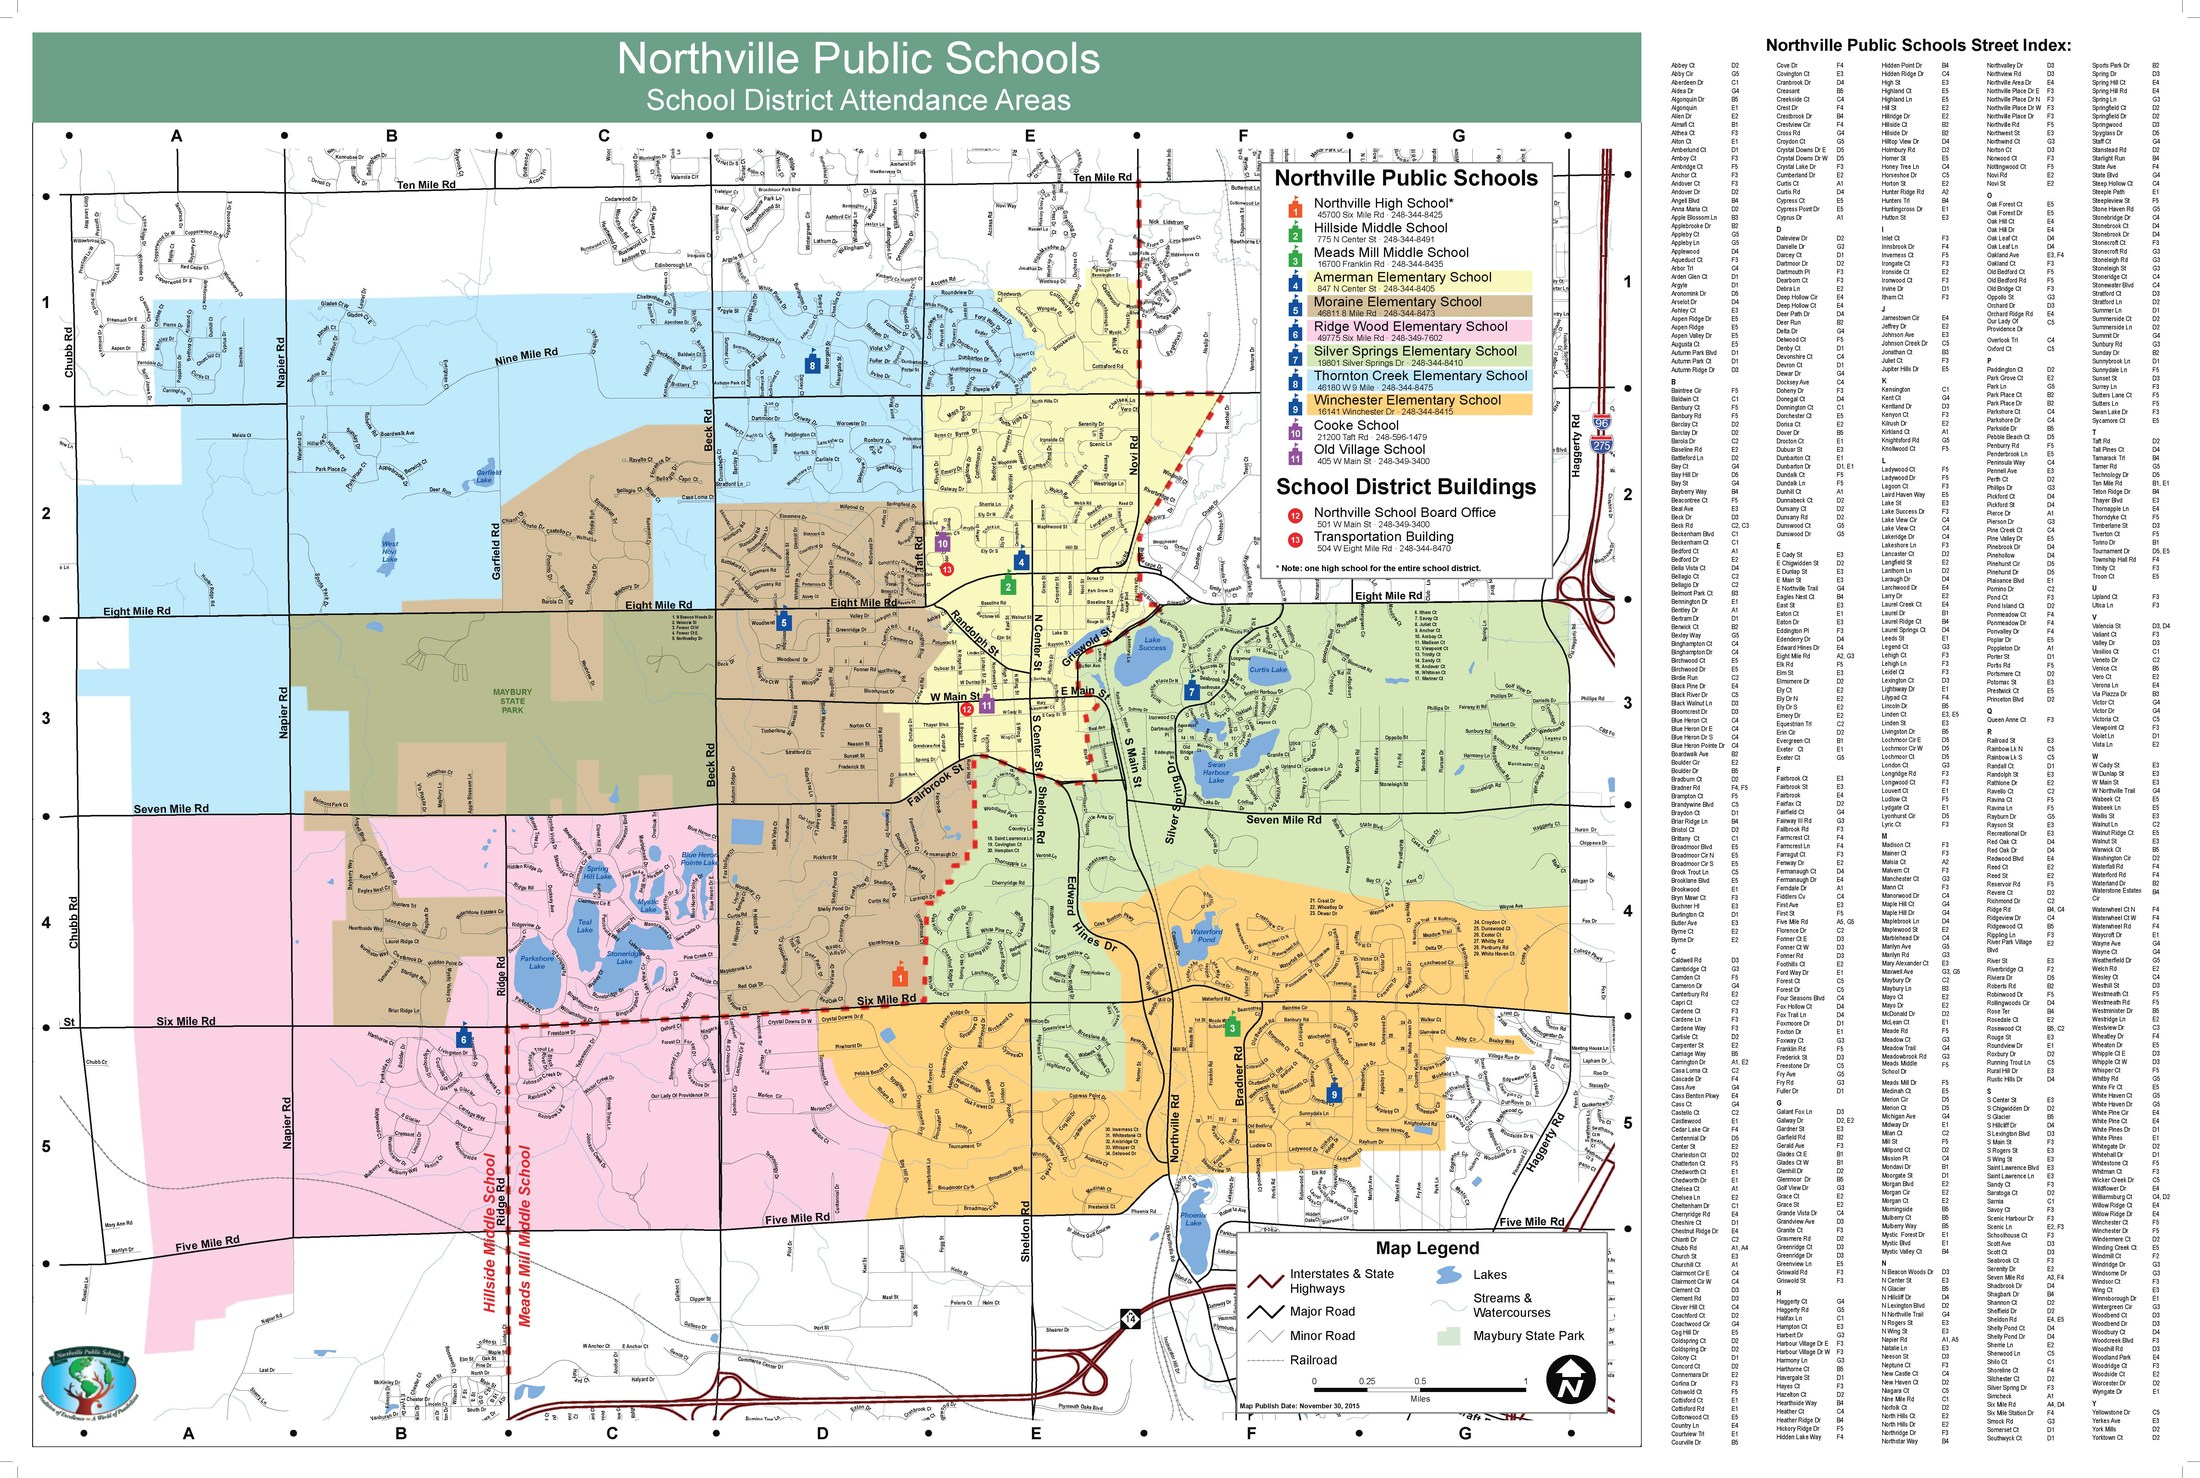 Boundary Maps District Information Northville Public Schools